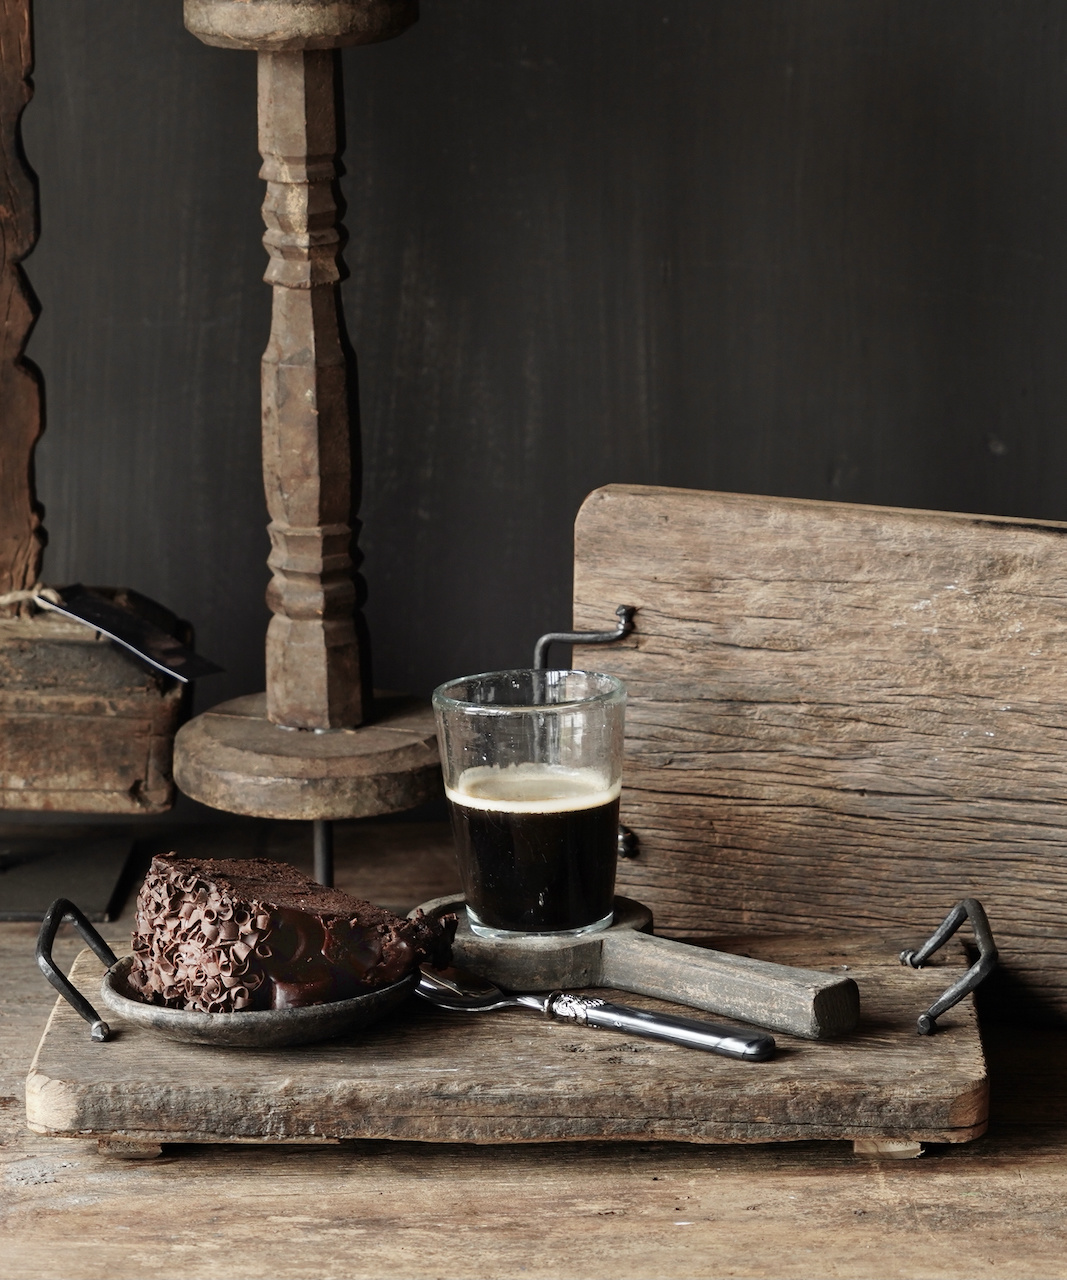 bread / serving tray of old wood with iron handles-1